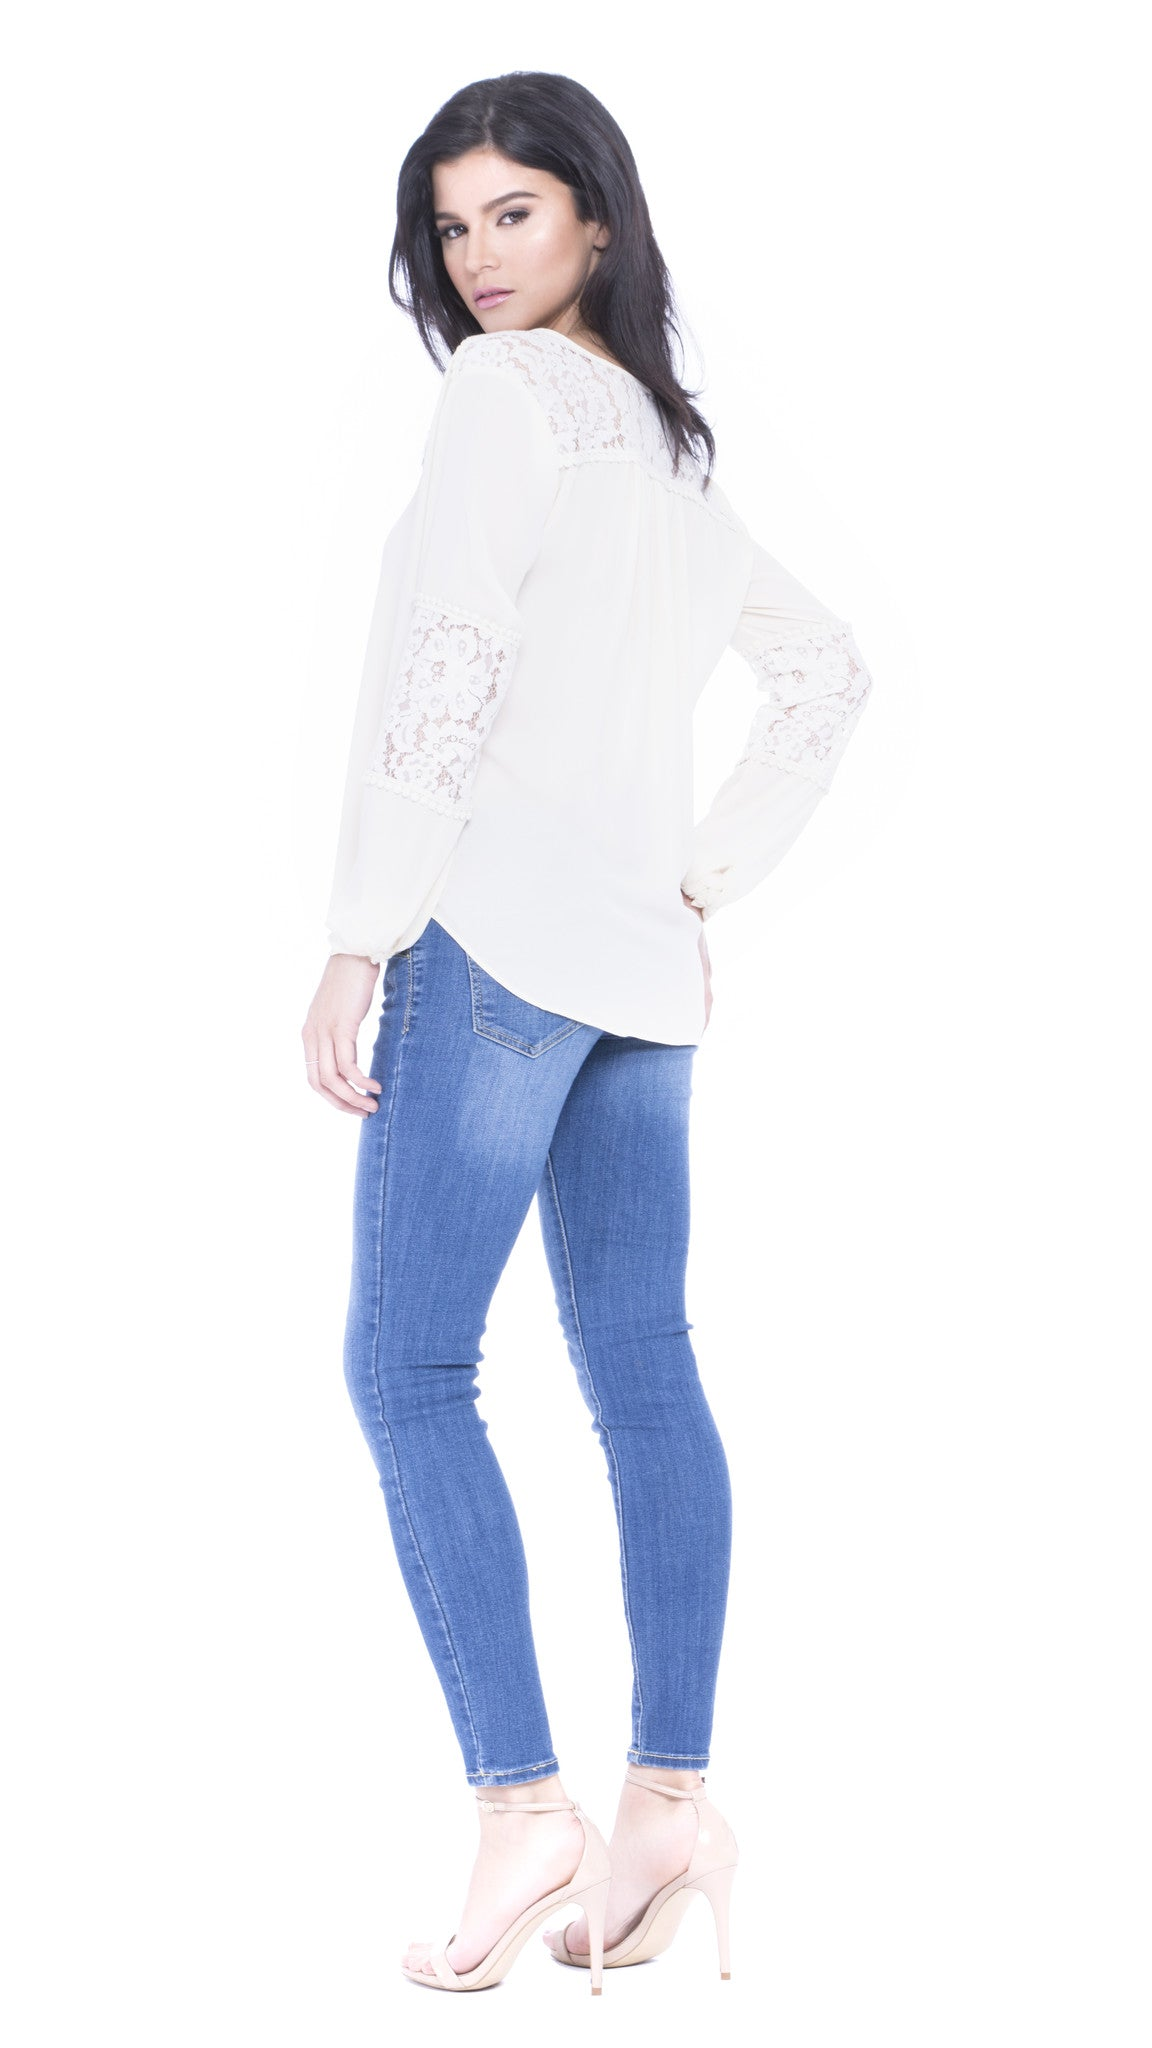 Ava Lace Top